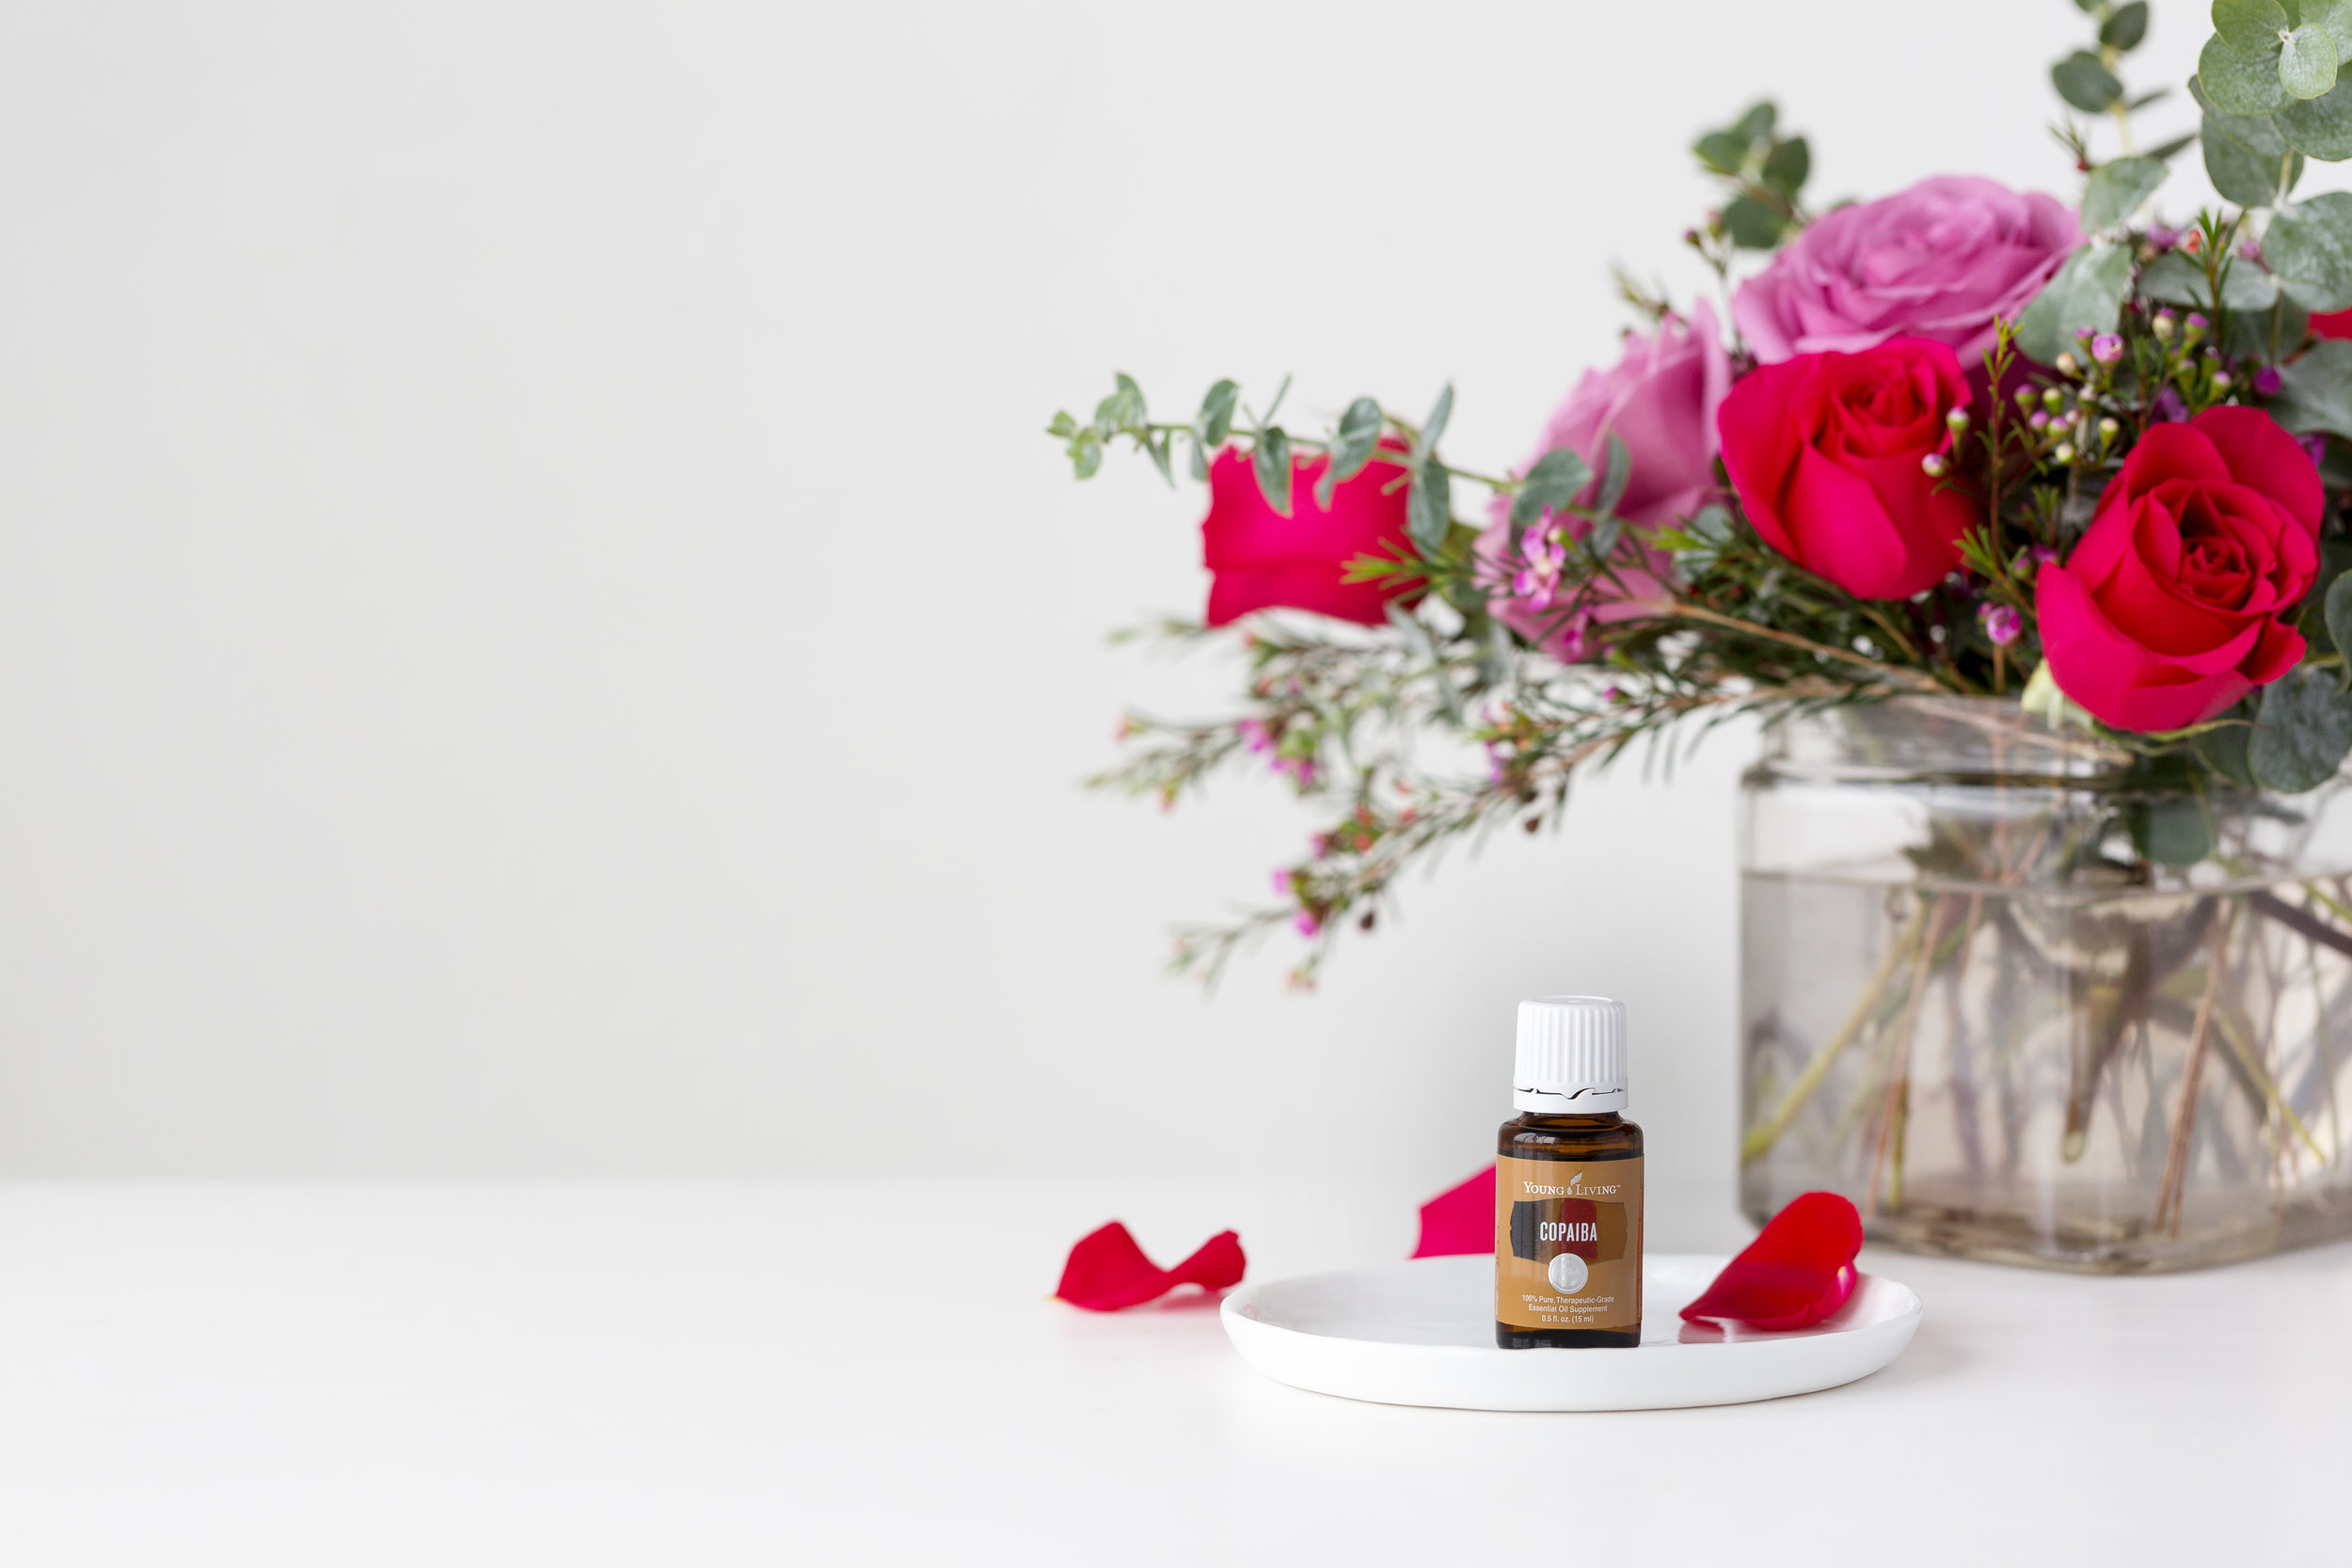 copaiba_15ml_vdaybouquet_ylimages_.jpg